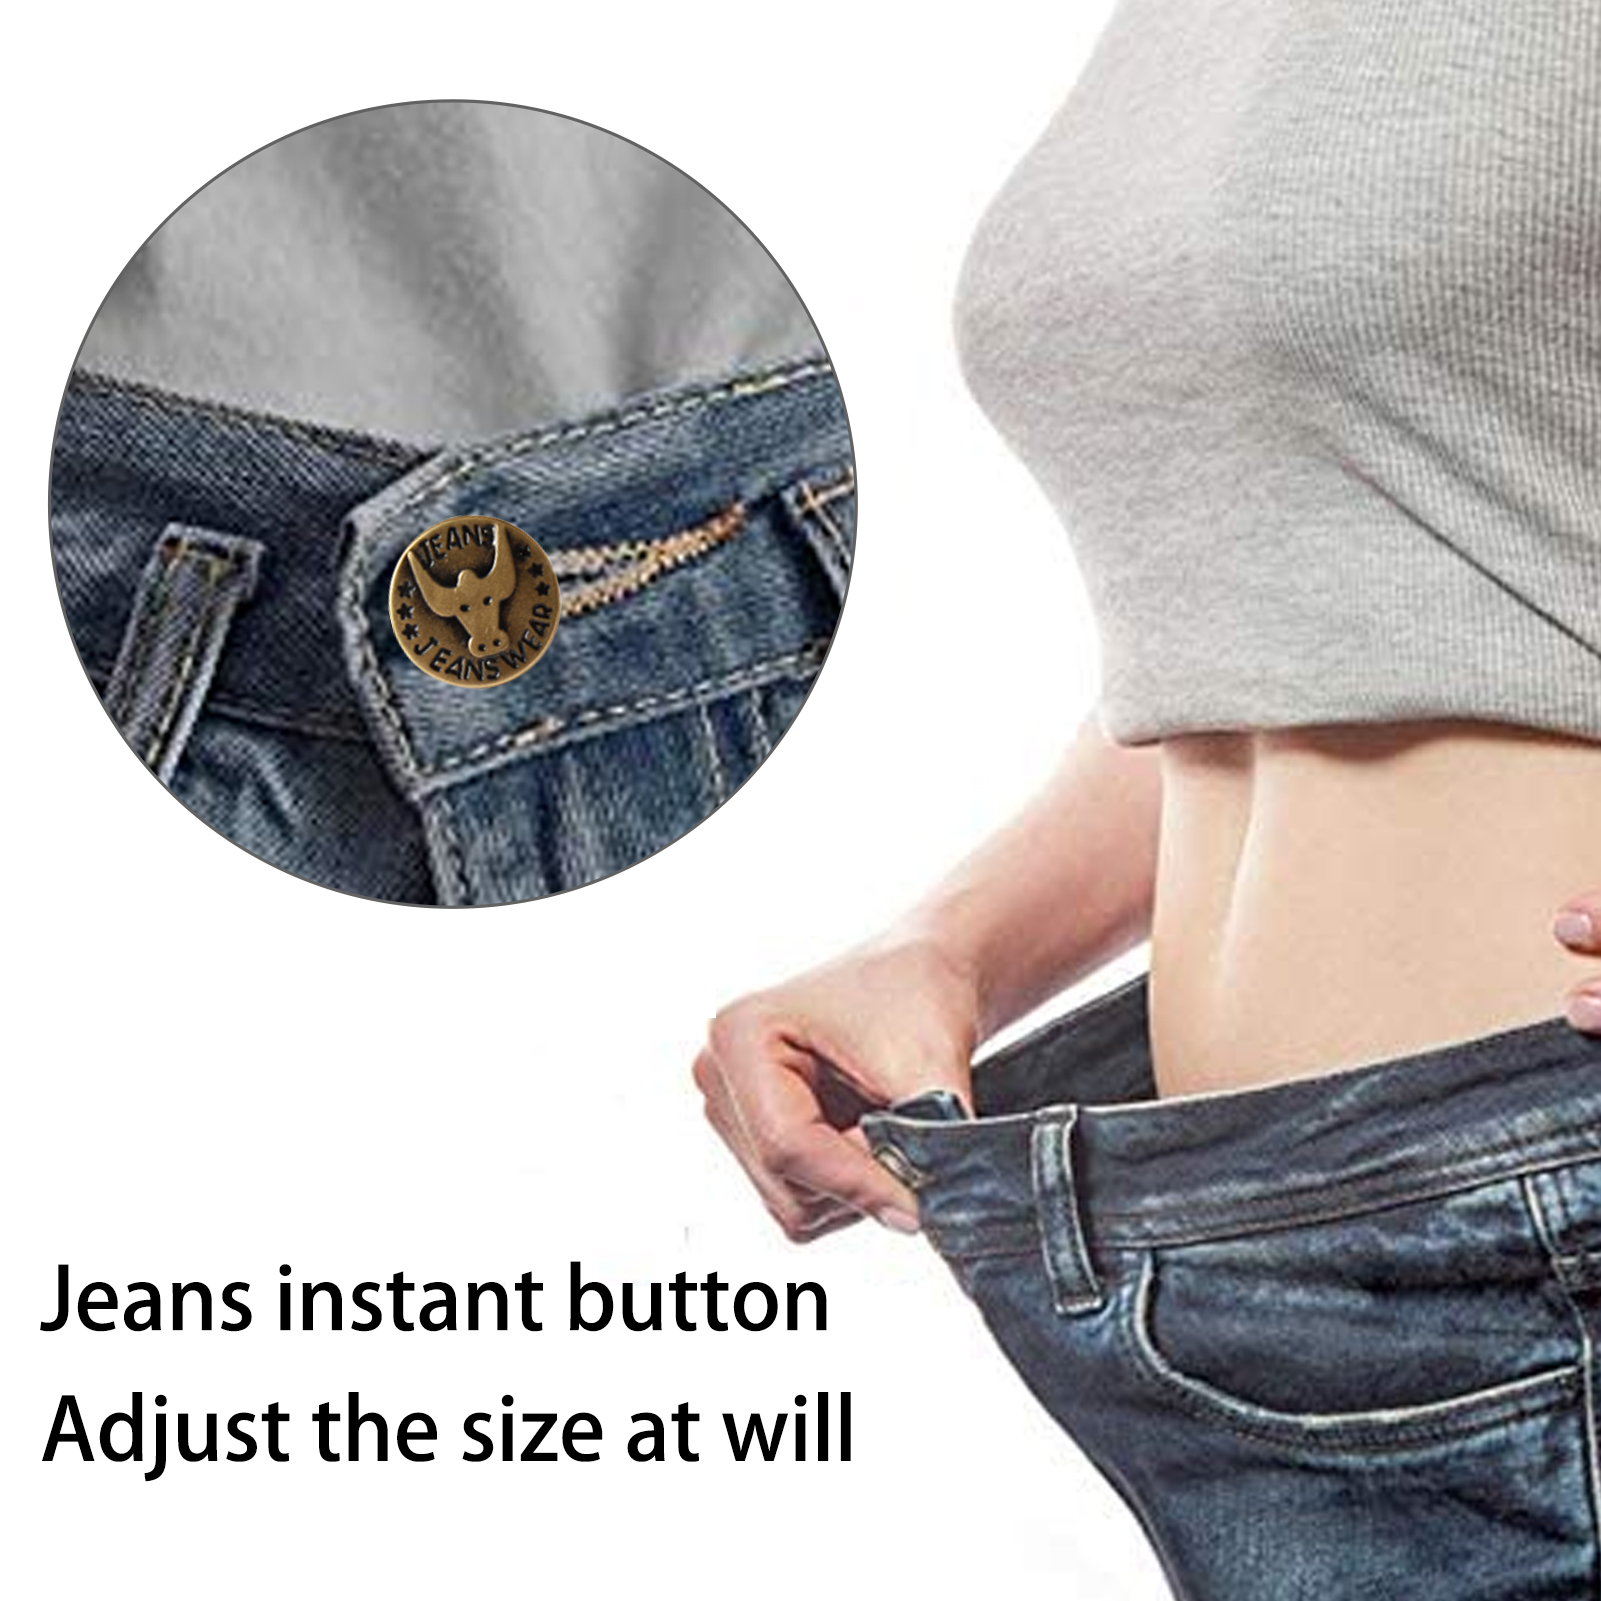 Instant Button Kit Metal Fastener Snap Jeans Pants Perfect Fit Adjustable Pin Self Increase Reduce Waist